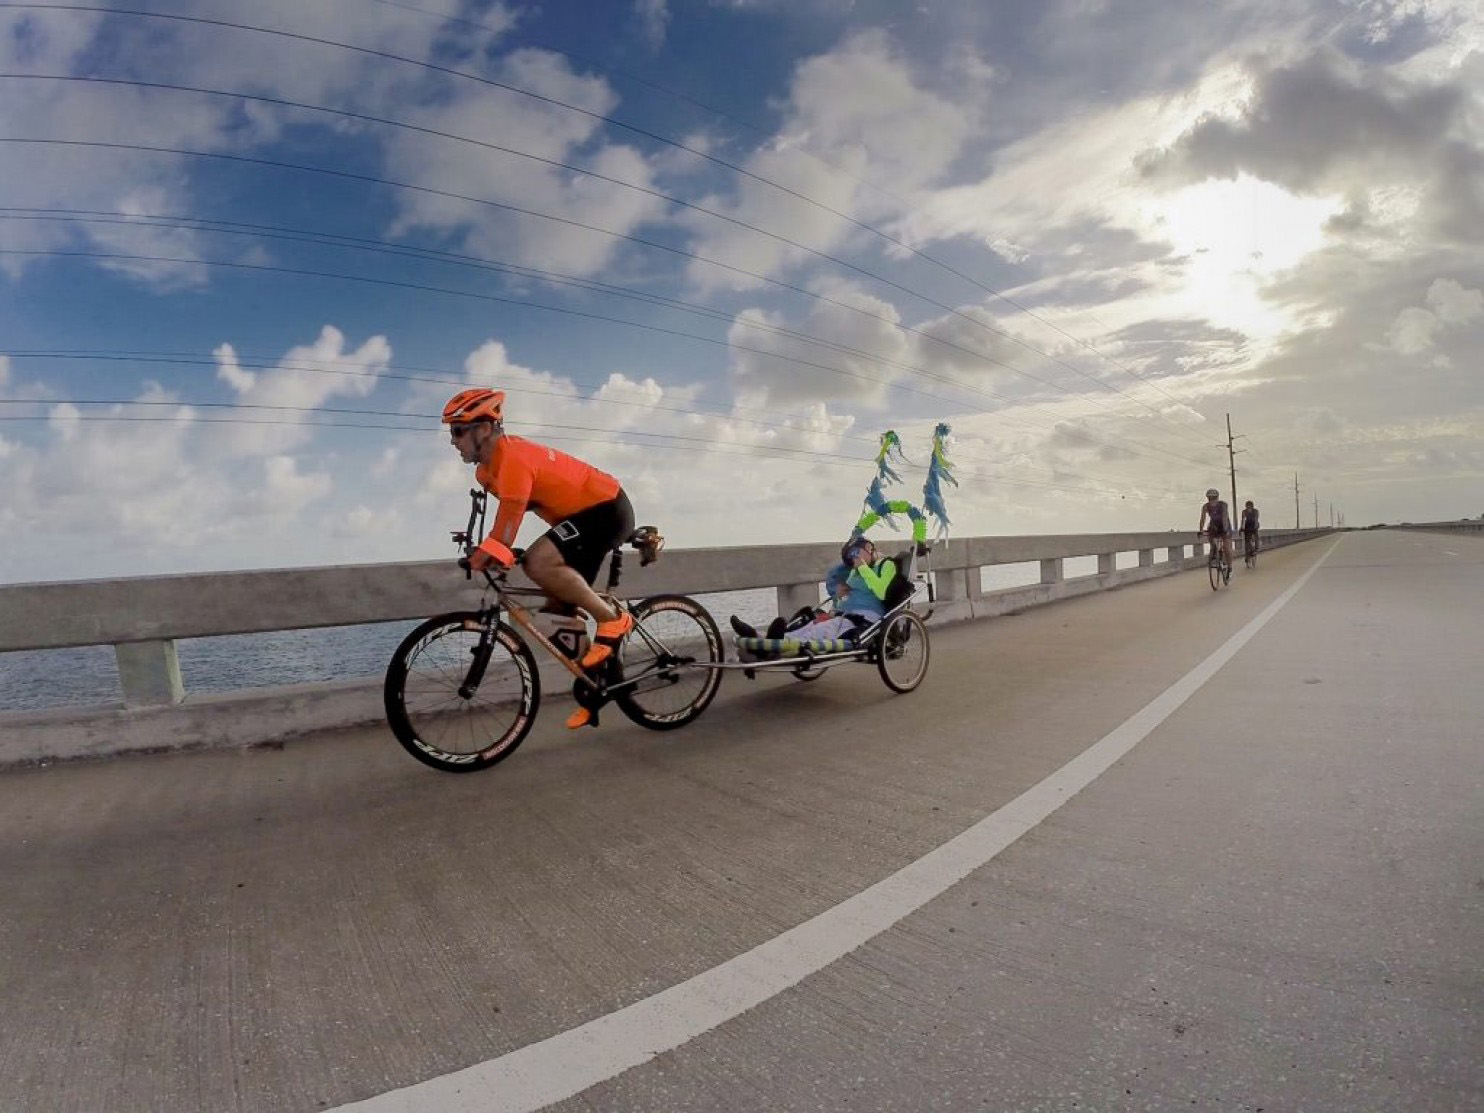 Hector Picard y Kelly Gruson pasan por uno de los puentes de camino a Key West. (Julio Mendez/The Washington Post).